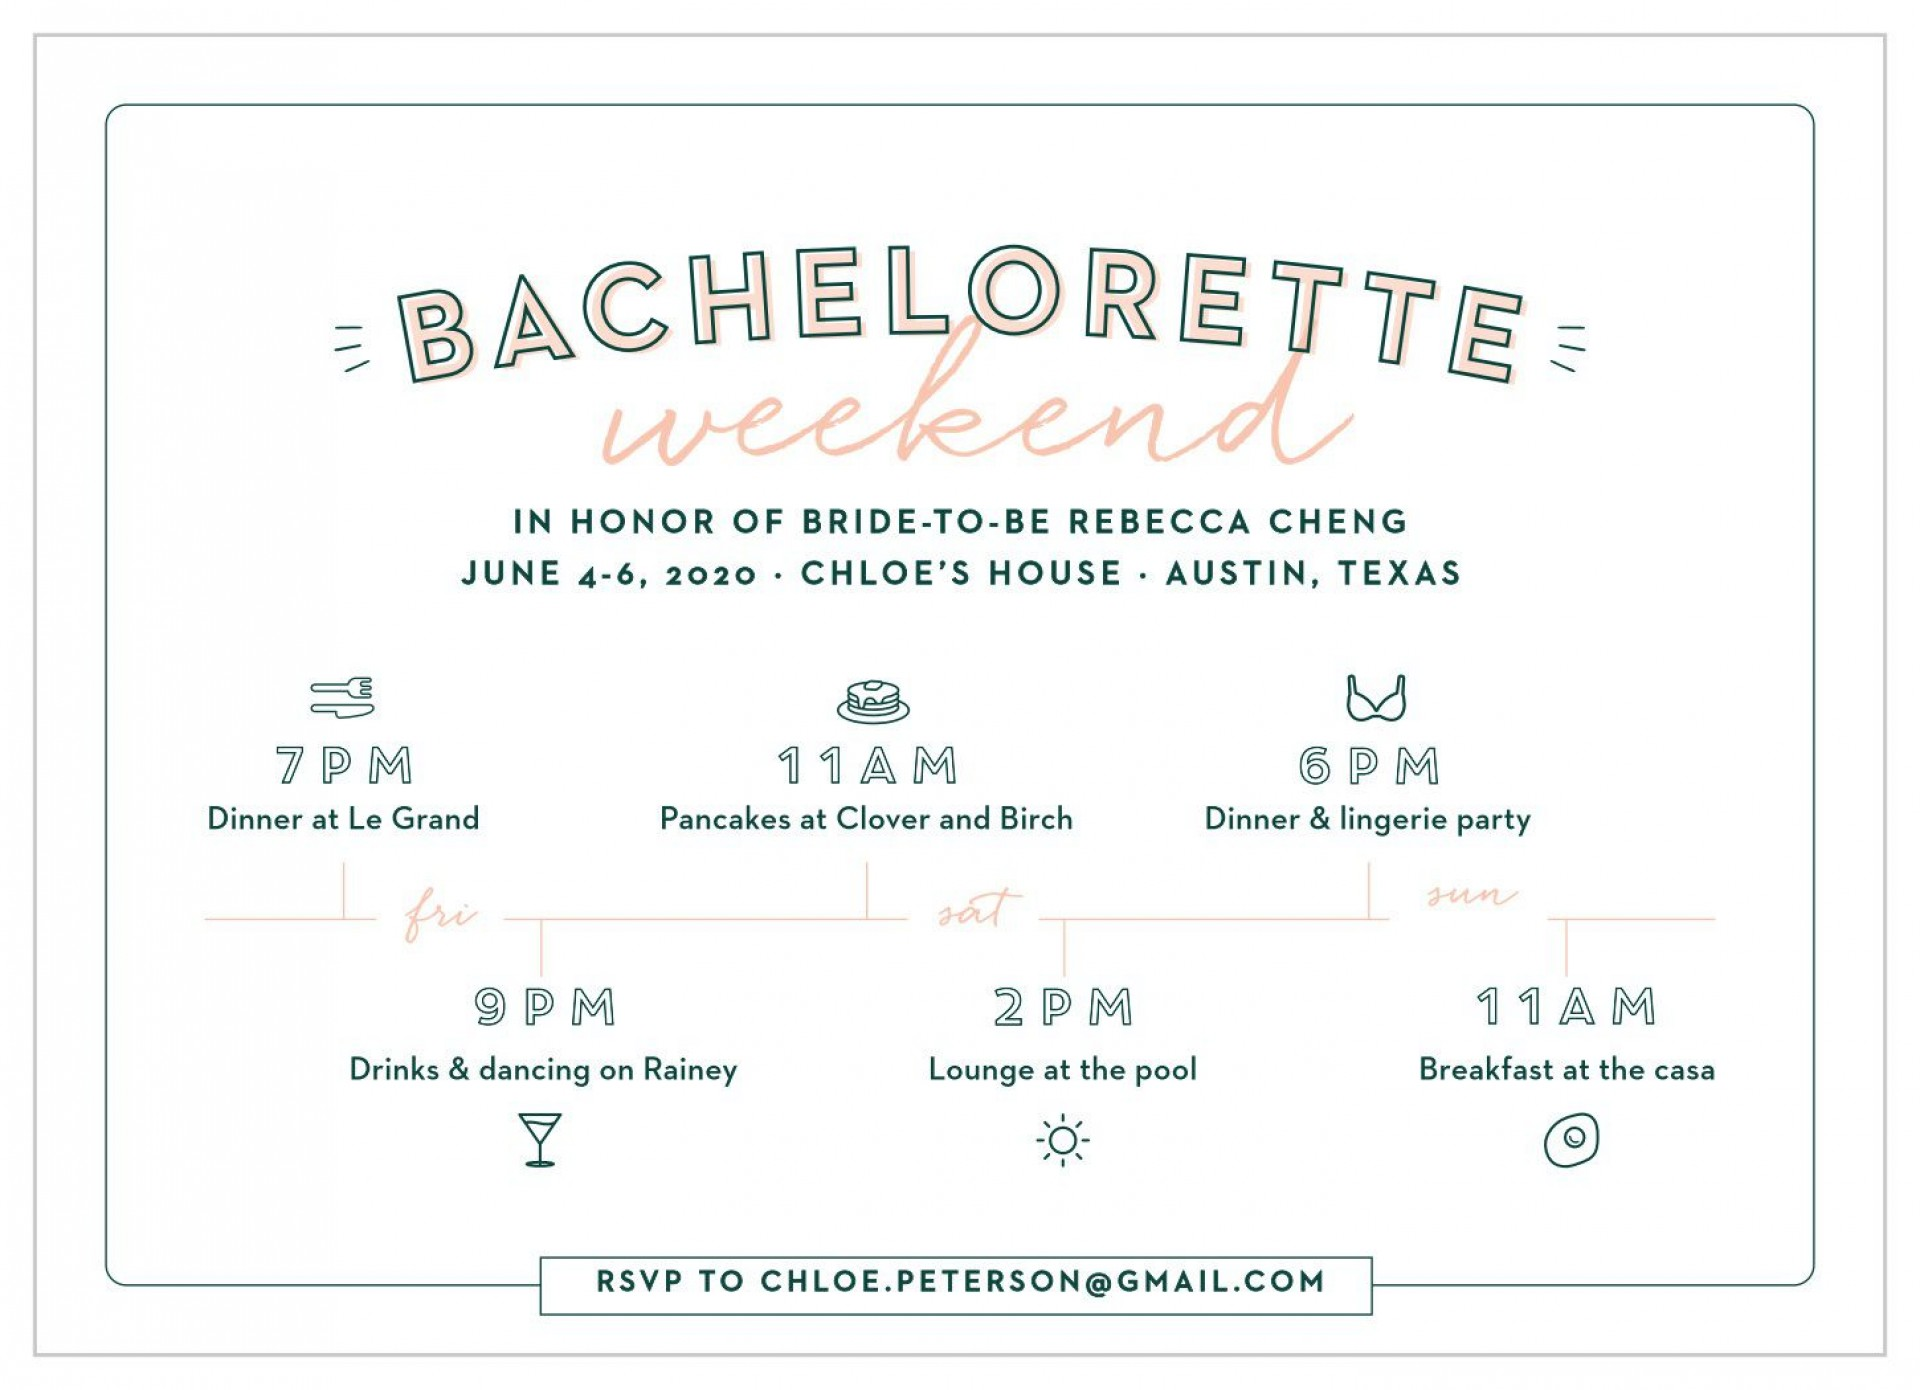 009 Archaicawful Bachelorette Itinerary Template Free Highest Clarity  Party Editable Download1920